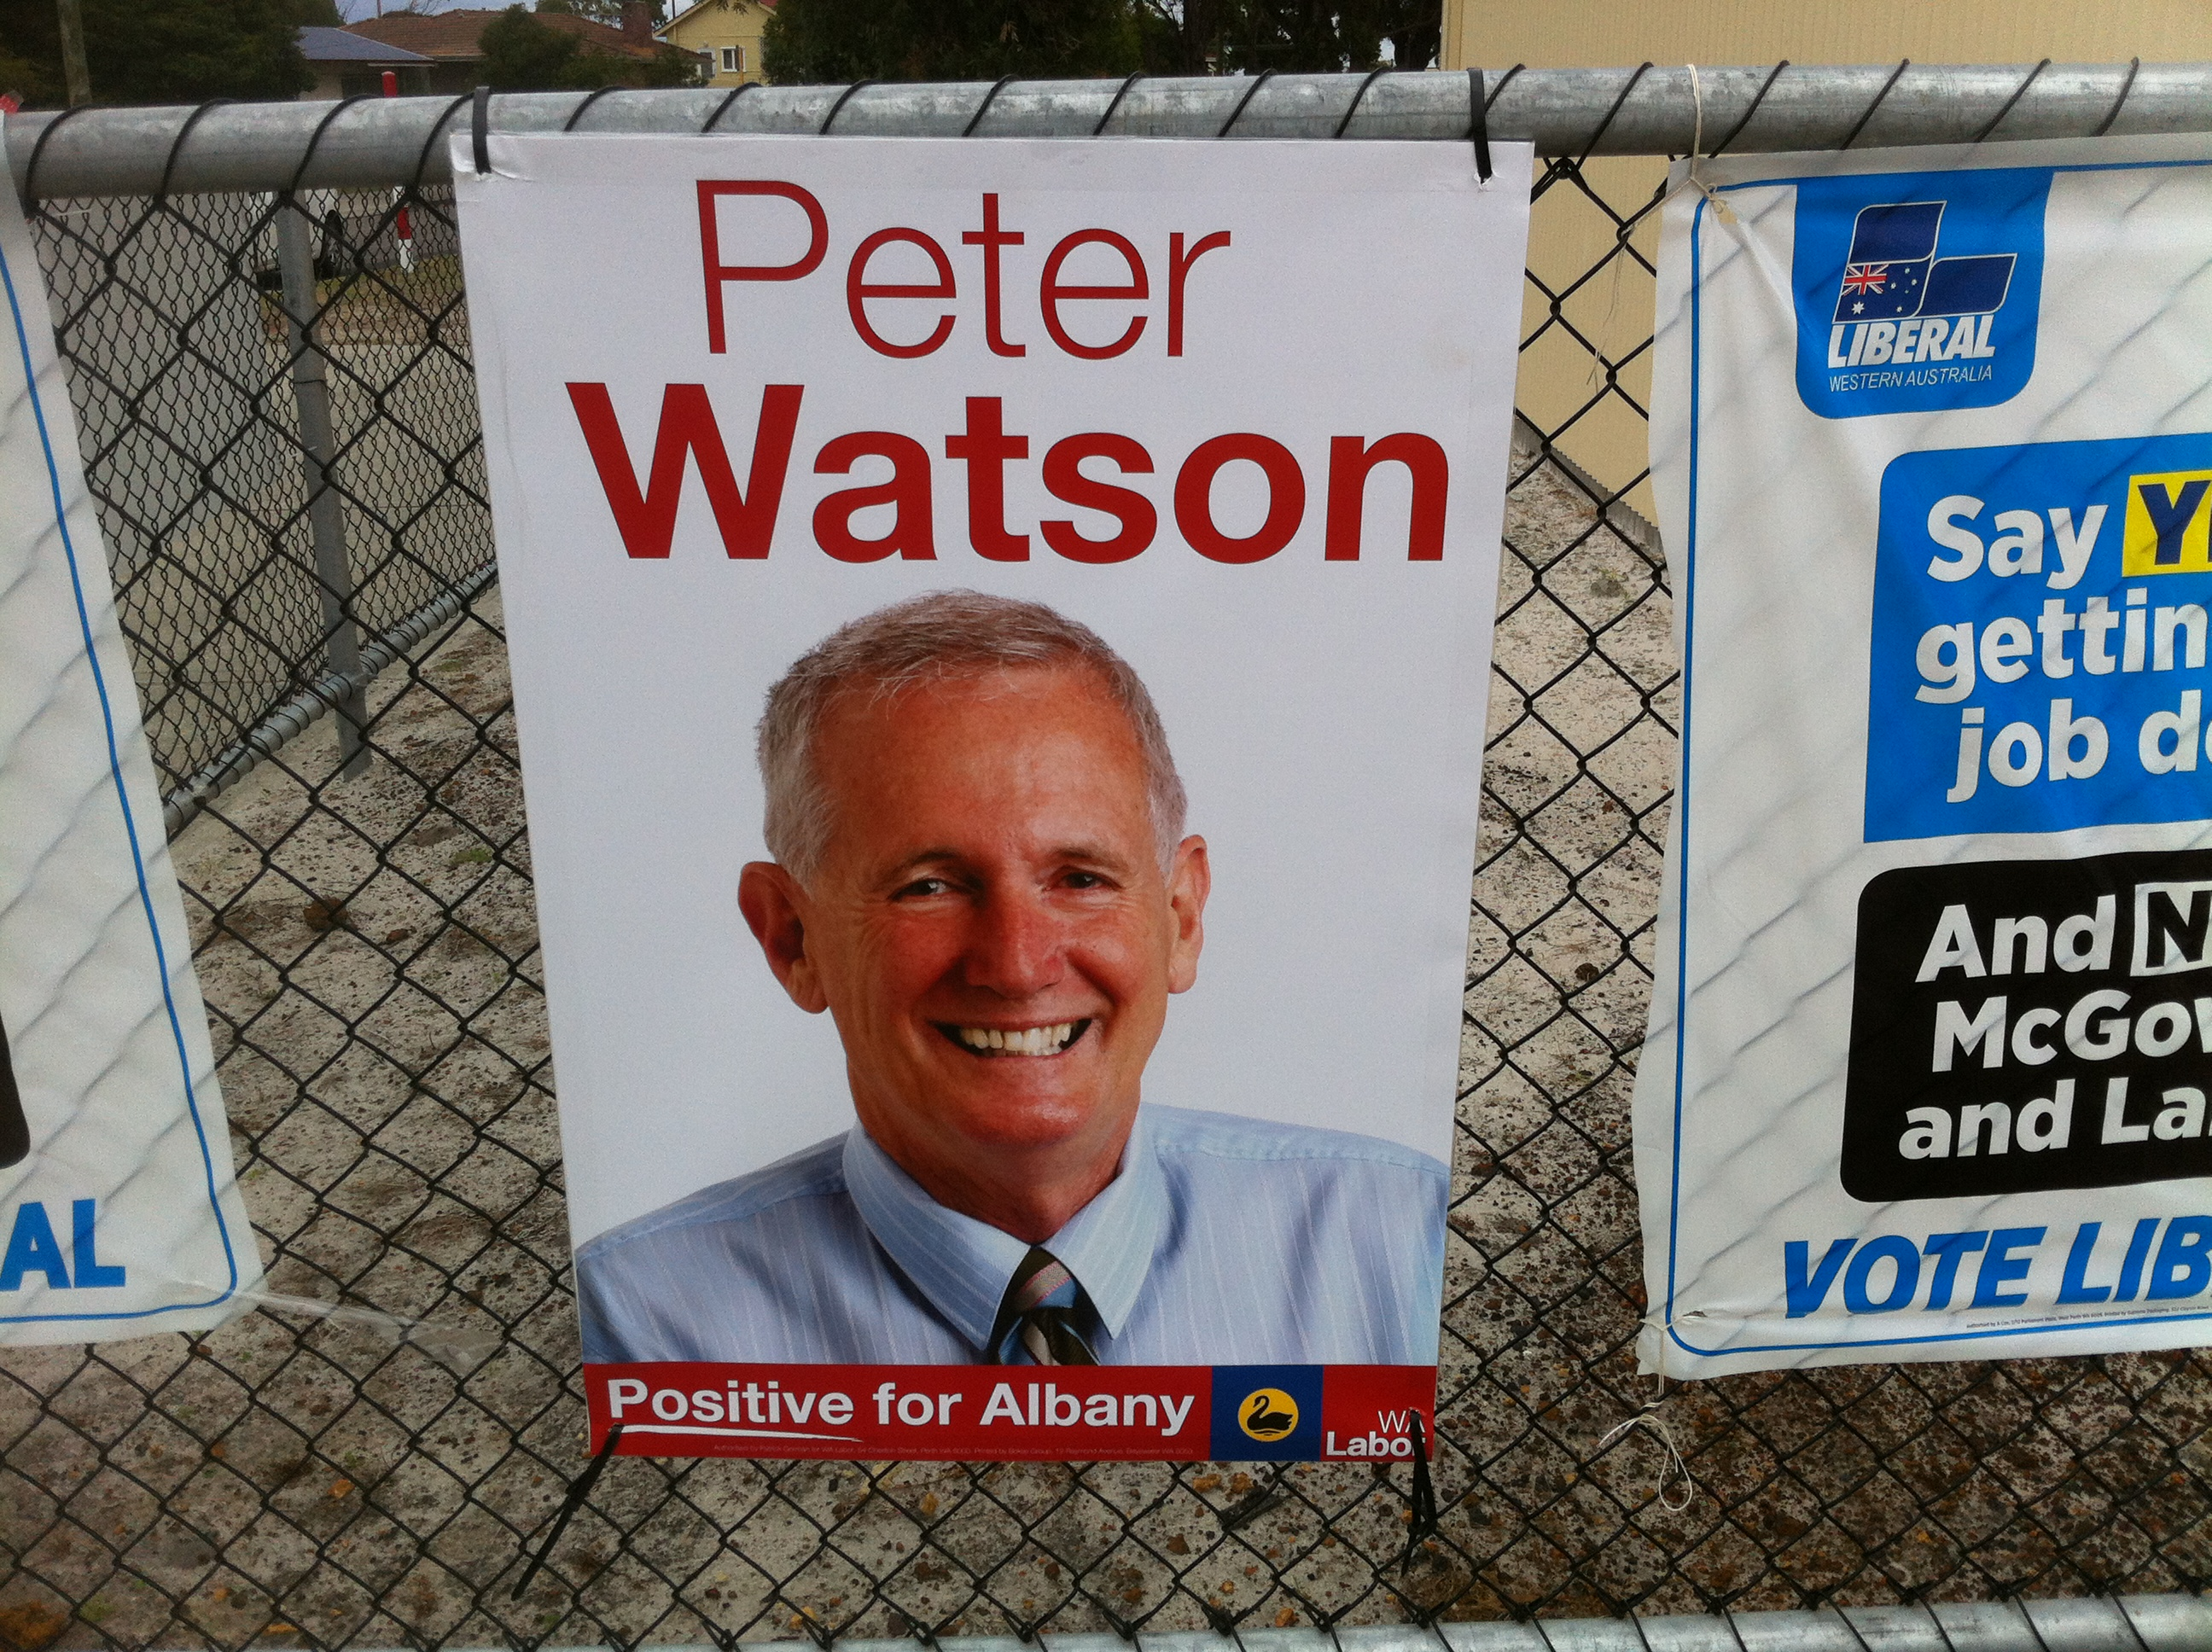 https://upload.wikimedia.org/wikipedia/commons/e/e0/Peter_Watson_campaign_poster_2017.jpg